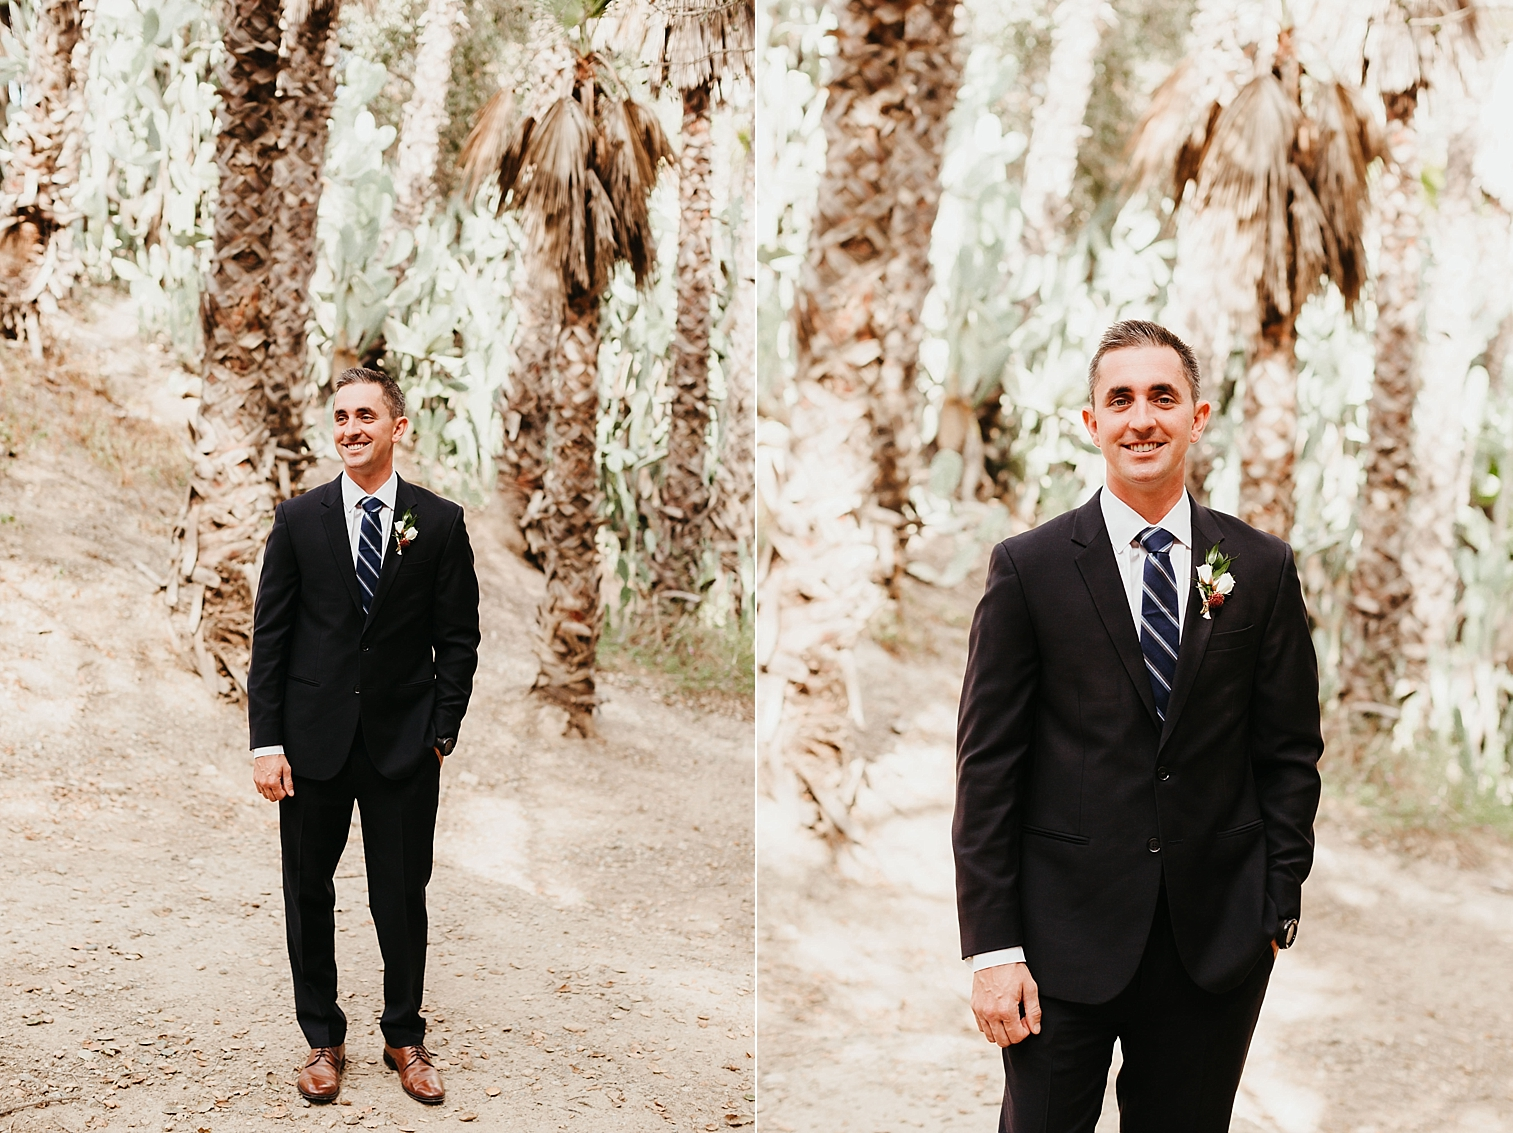 Rancho-Las-Lomas-Wedding-46.jpg